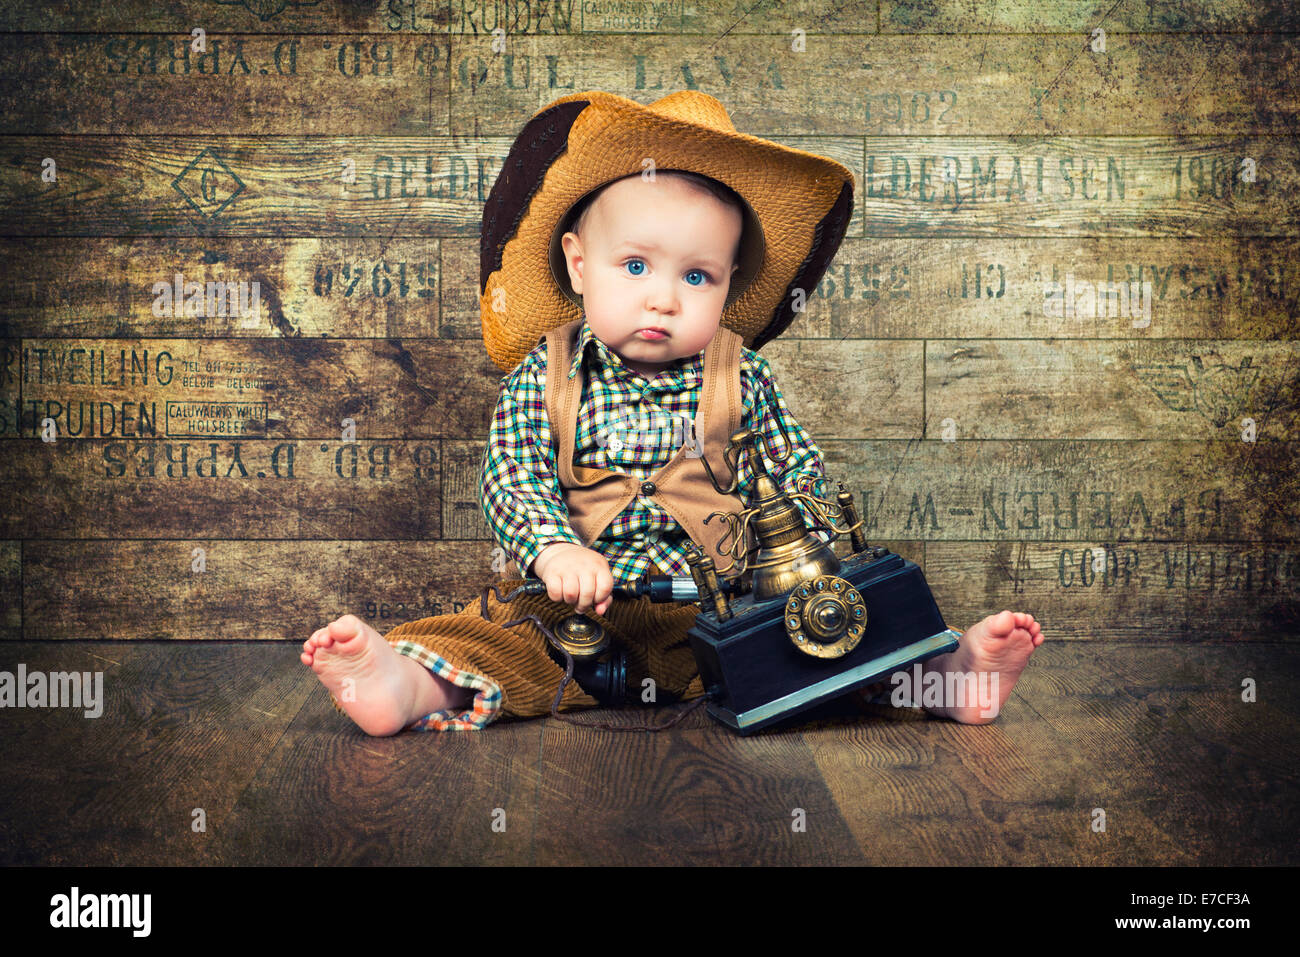 9866edbc856 Cute kid in cowboy hat with retro phone on background of boards ...